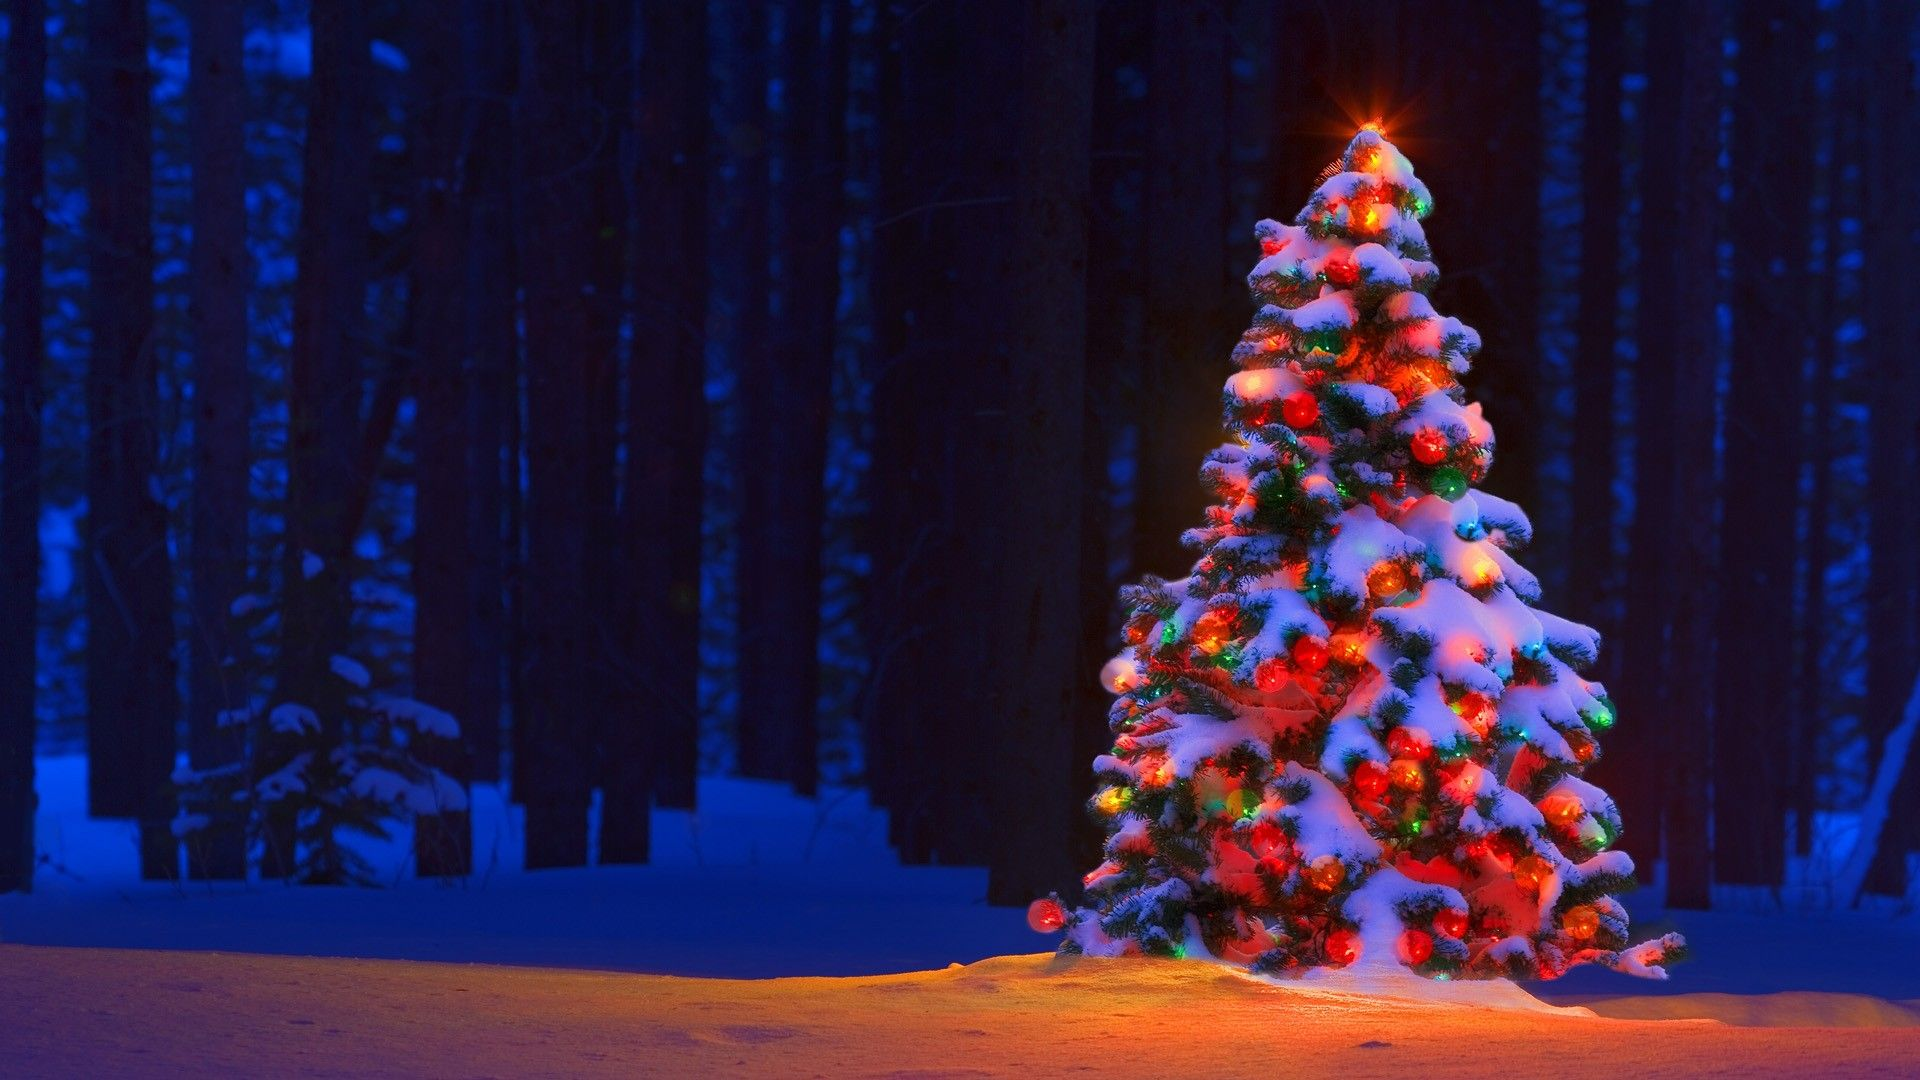 Beautiful christmas tree wallpaper - 50 Beautiful Christmas Tree Wallpapers